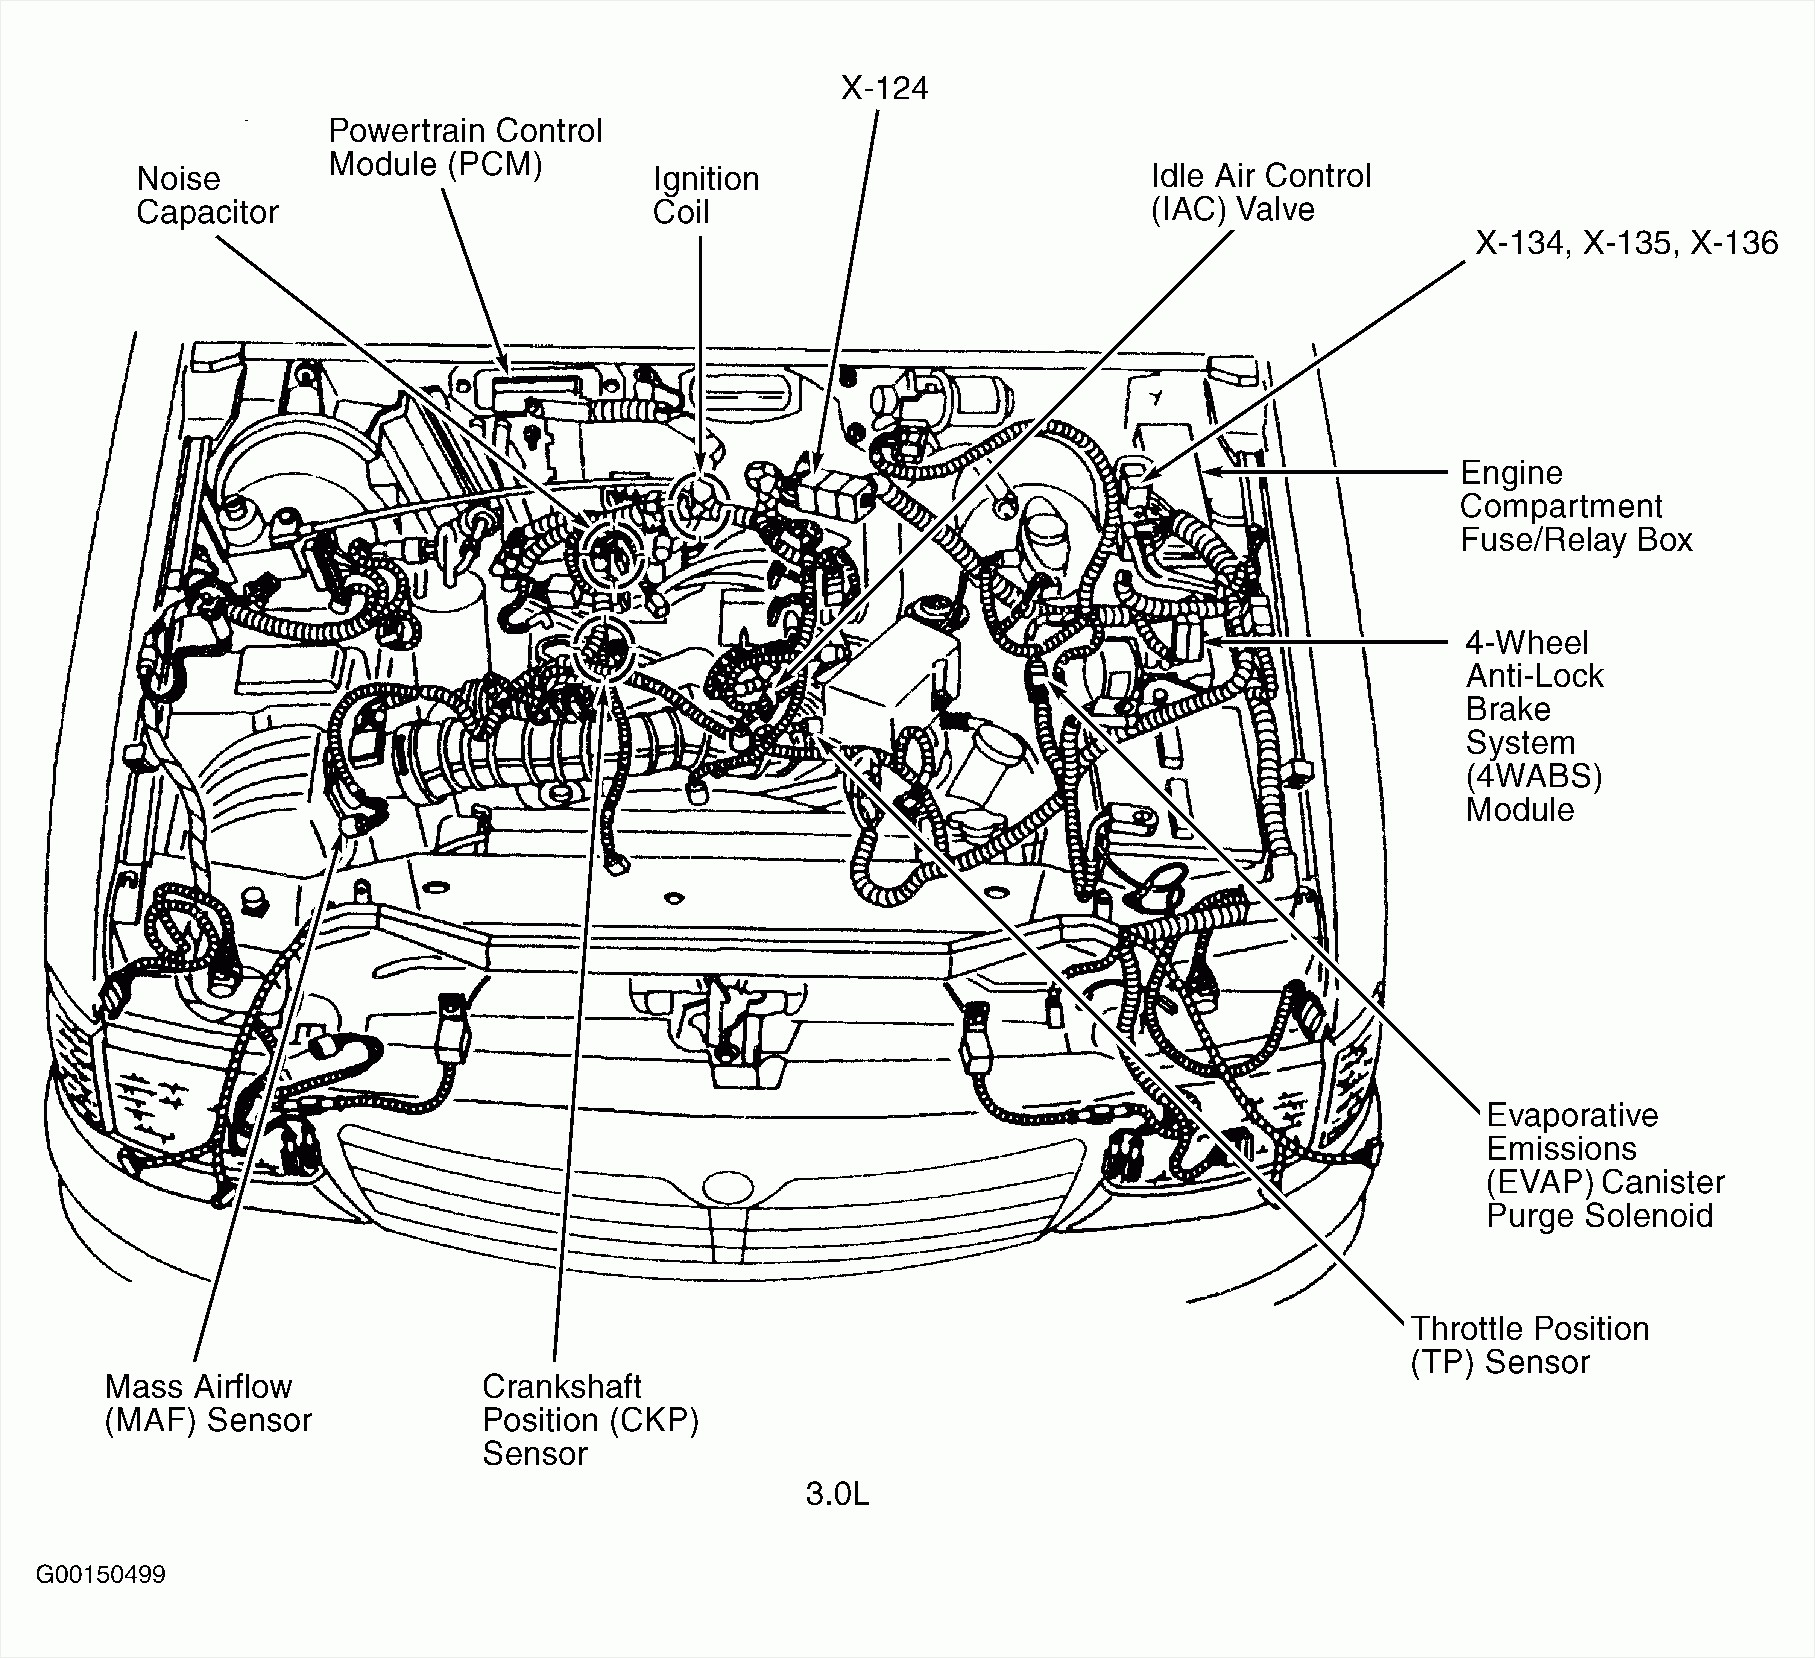 1991 Mazda Miata Engine Diagram Simple Guide About Wiring 1989 F250 Toyota 3 0 V6